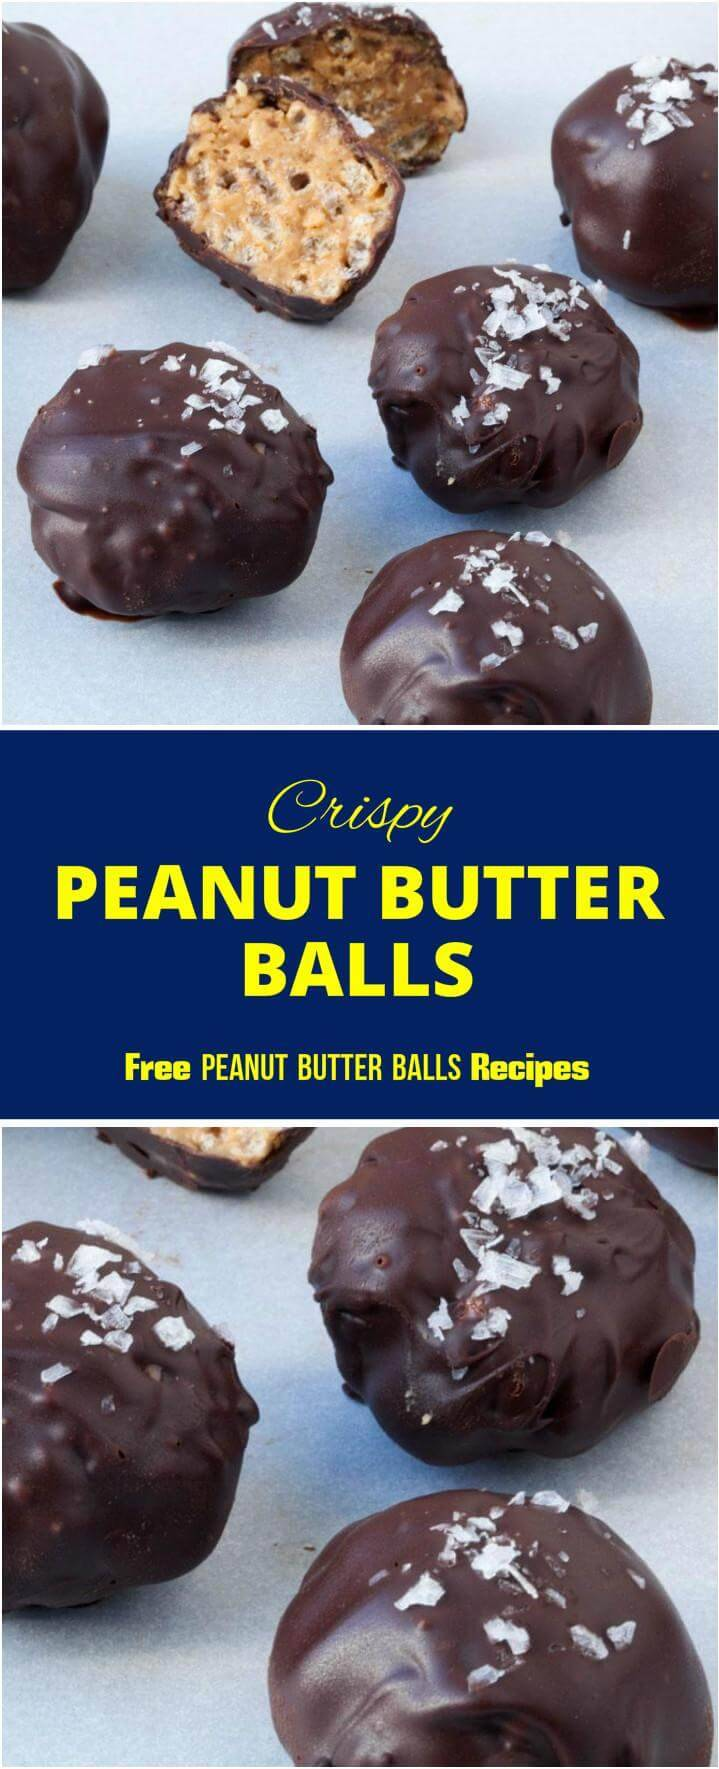 chocolate covered crispy peanut butter balls